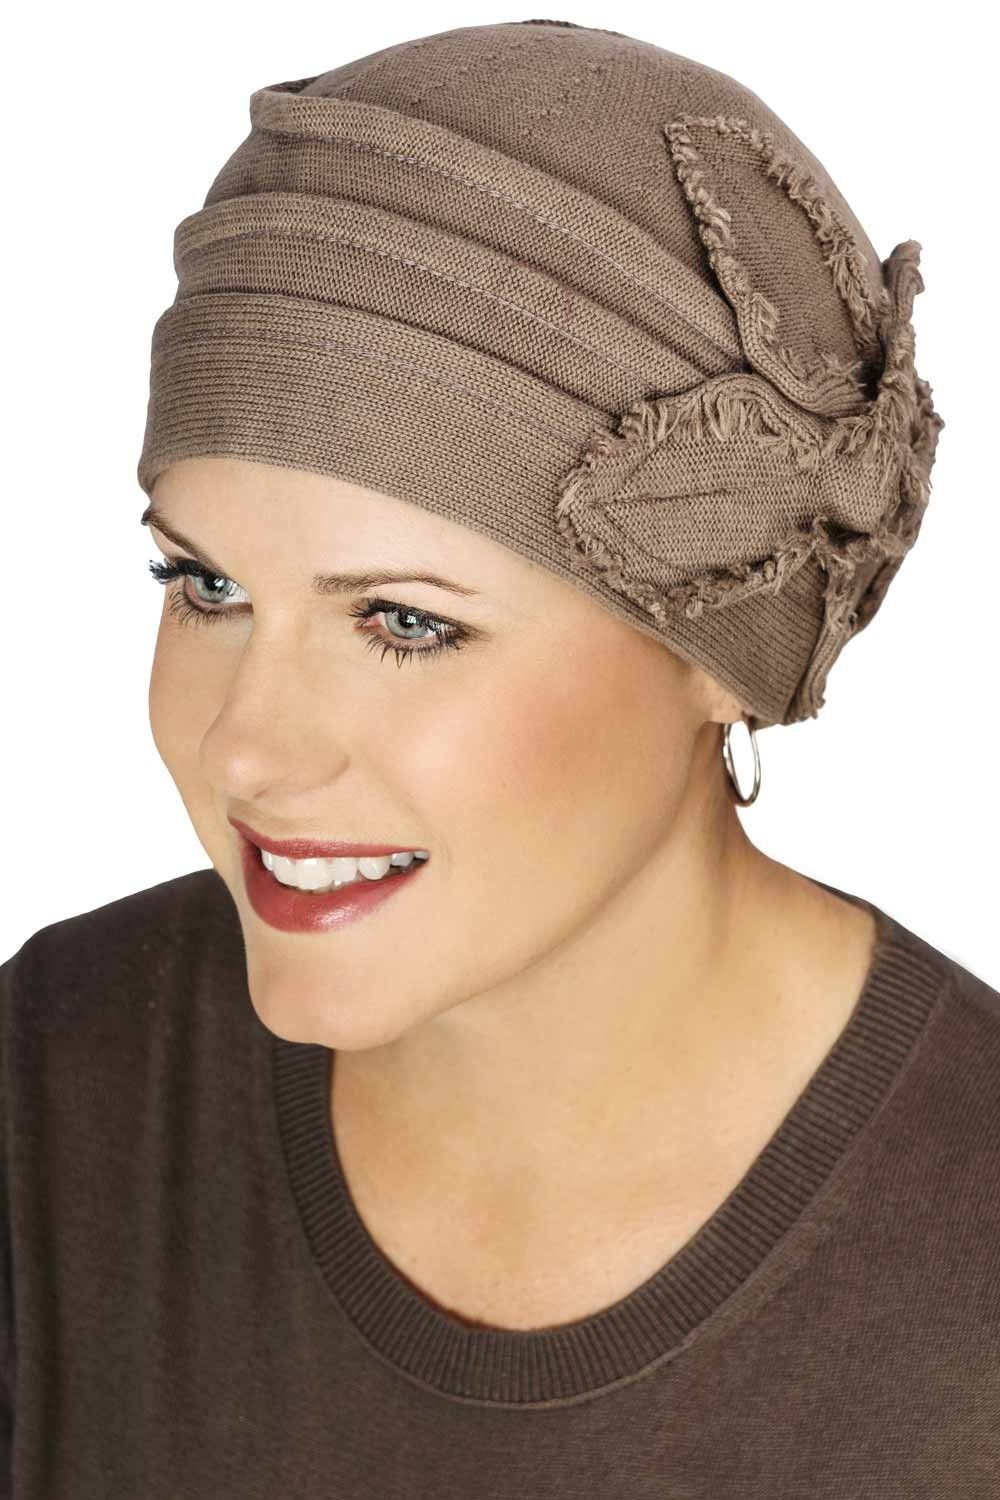 Butterfly Fringe Beanie Hats for Cancer Patients -Chemo Hats for Women 2be2d660b236